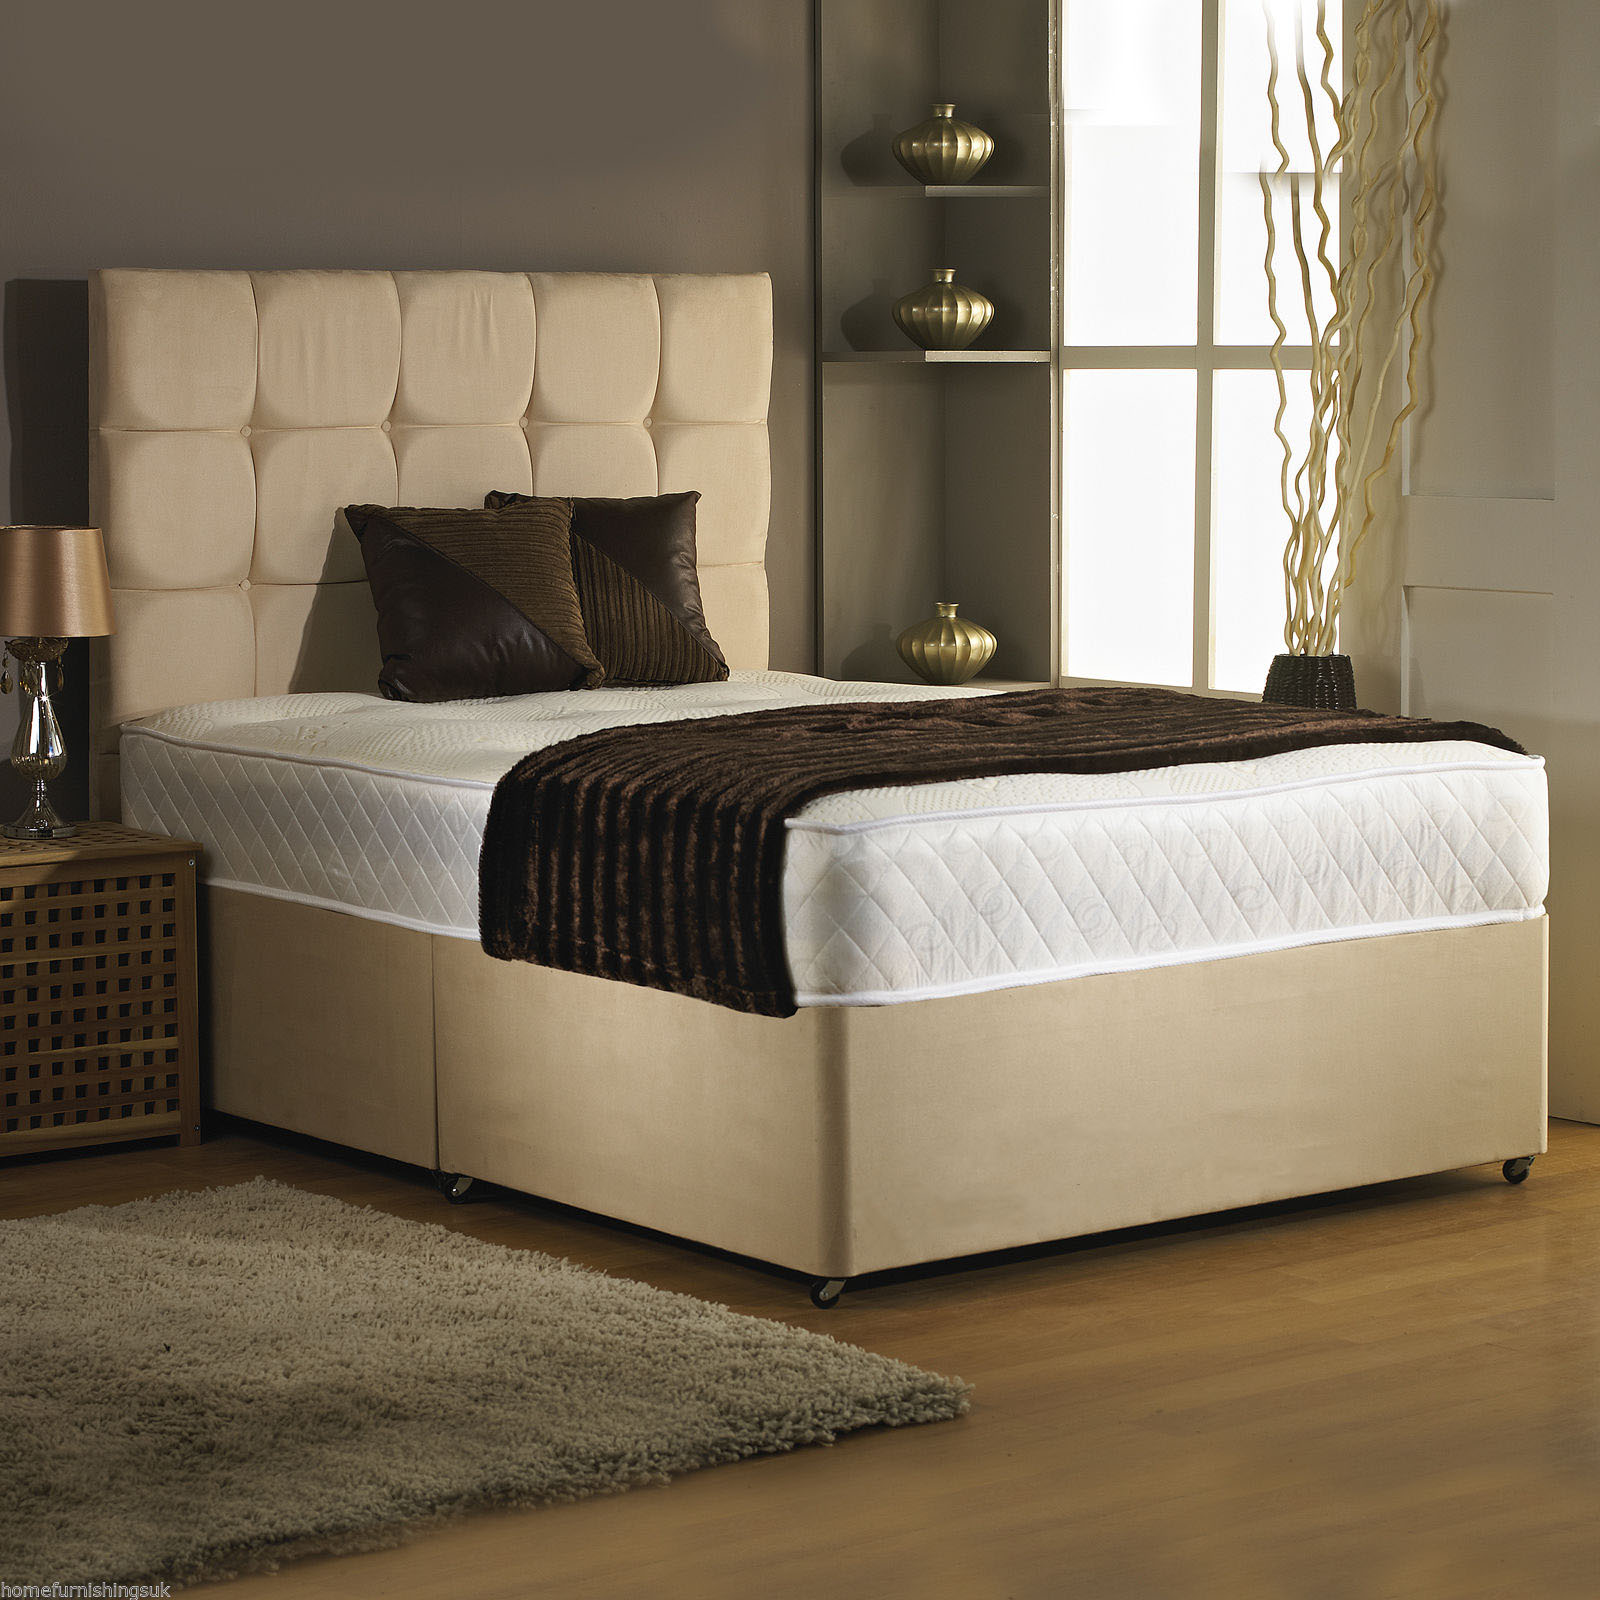 4ft Small Double Divan Bed Base only in Stone Colour Suede